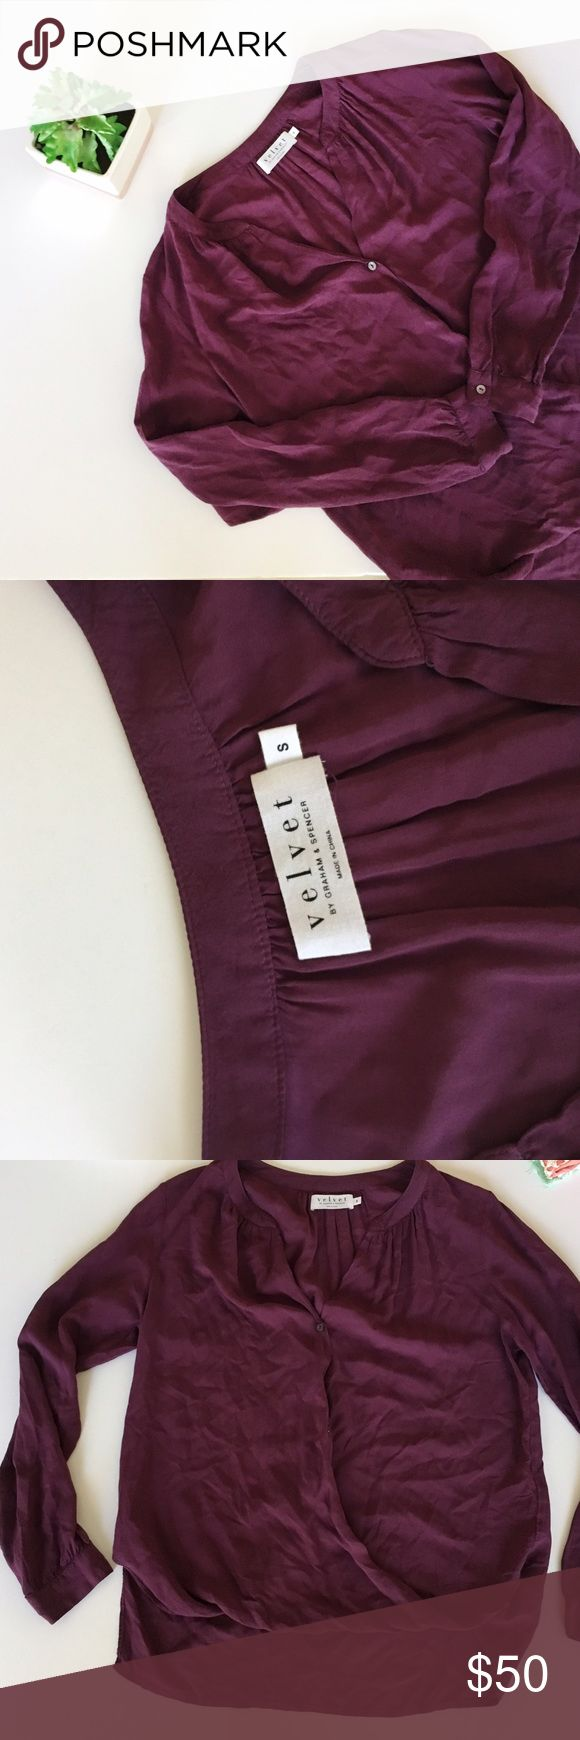 Velvet by Graham & Spencer Wrap Button Top Velvet by Graham and Spencer wrap front top size small. Button detailing. Front 20 inches, back 24 inches, bust 20 inches. No stains or holes, make an offer! Velvet by Graham & Spencer Tops Blouses